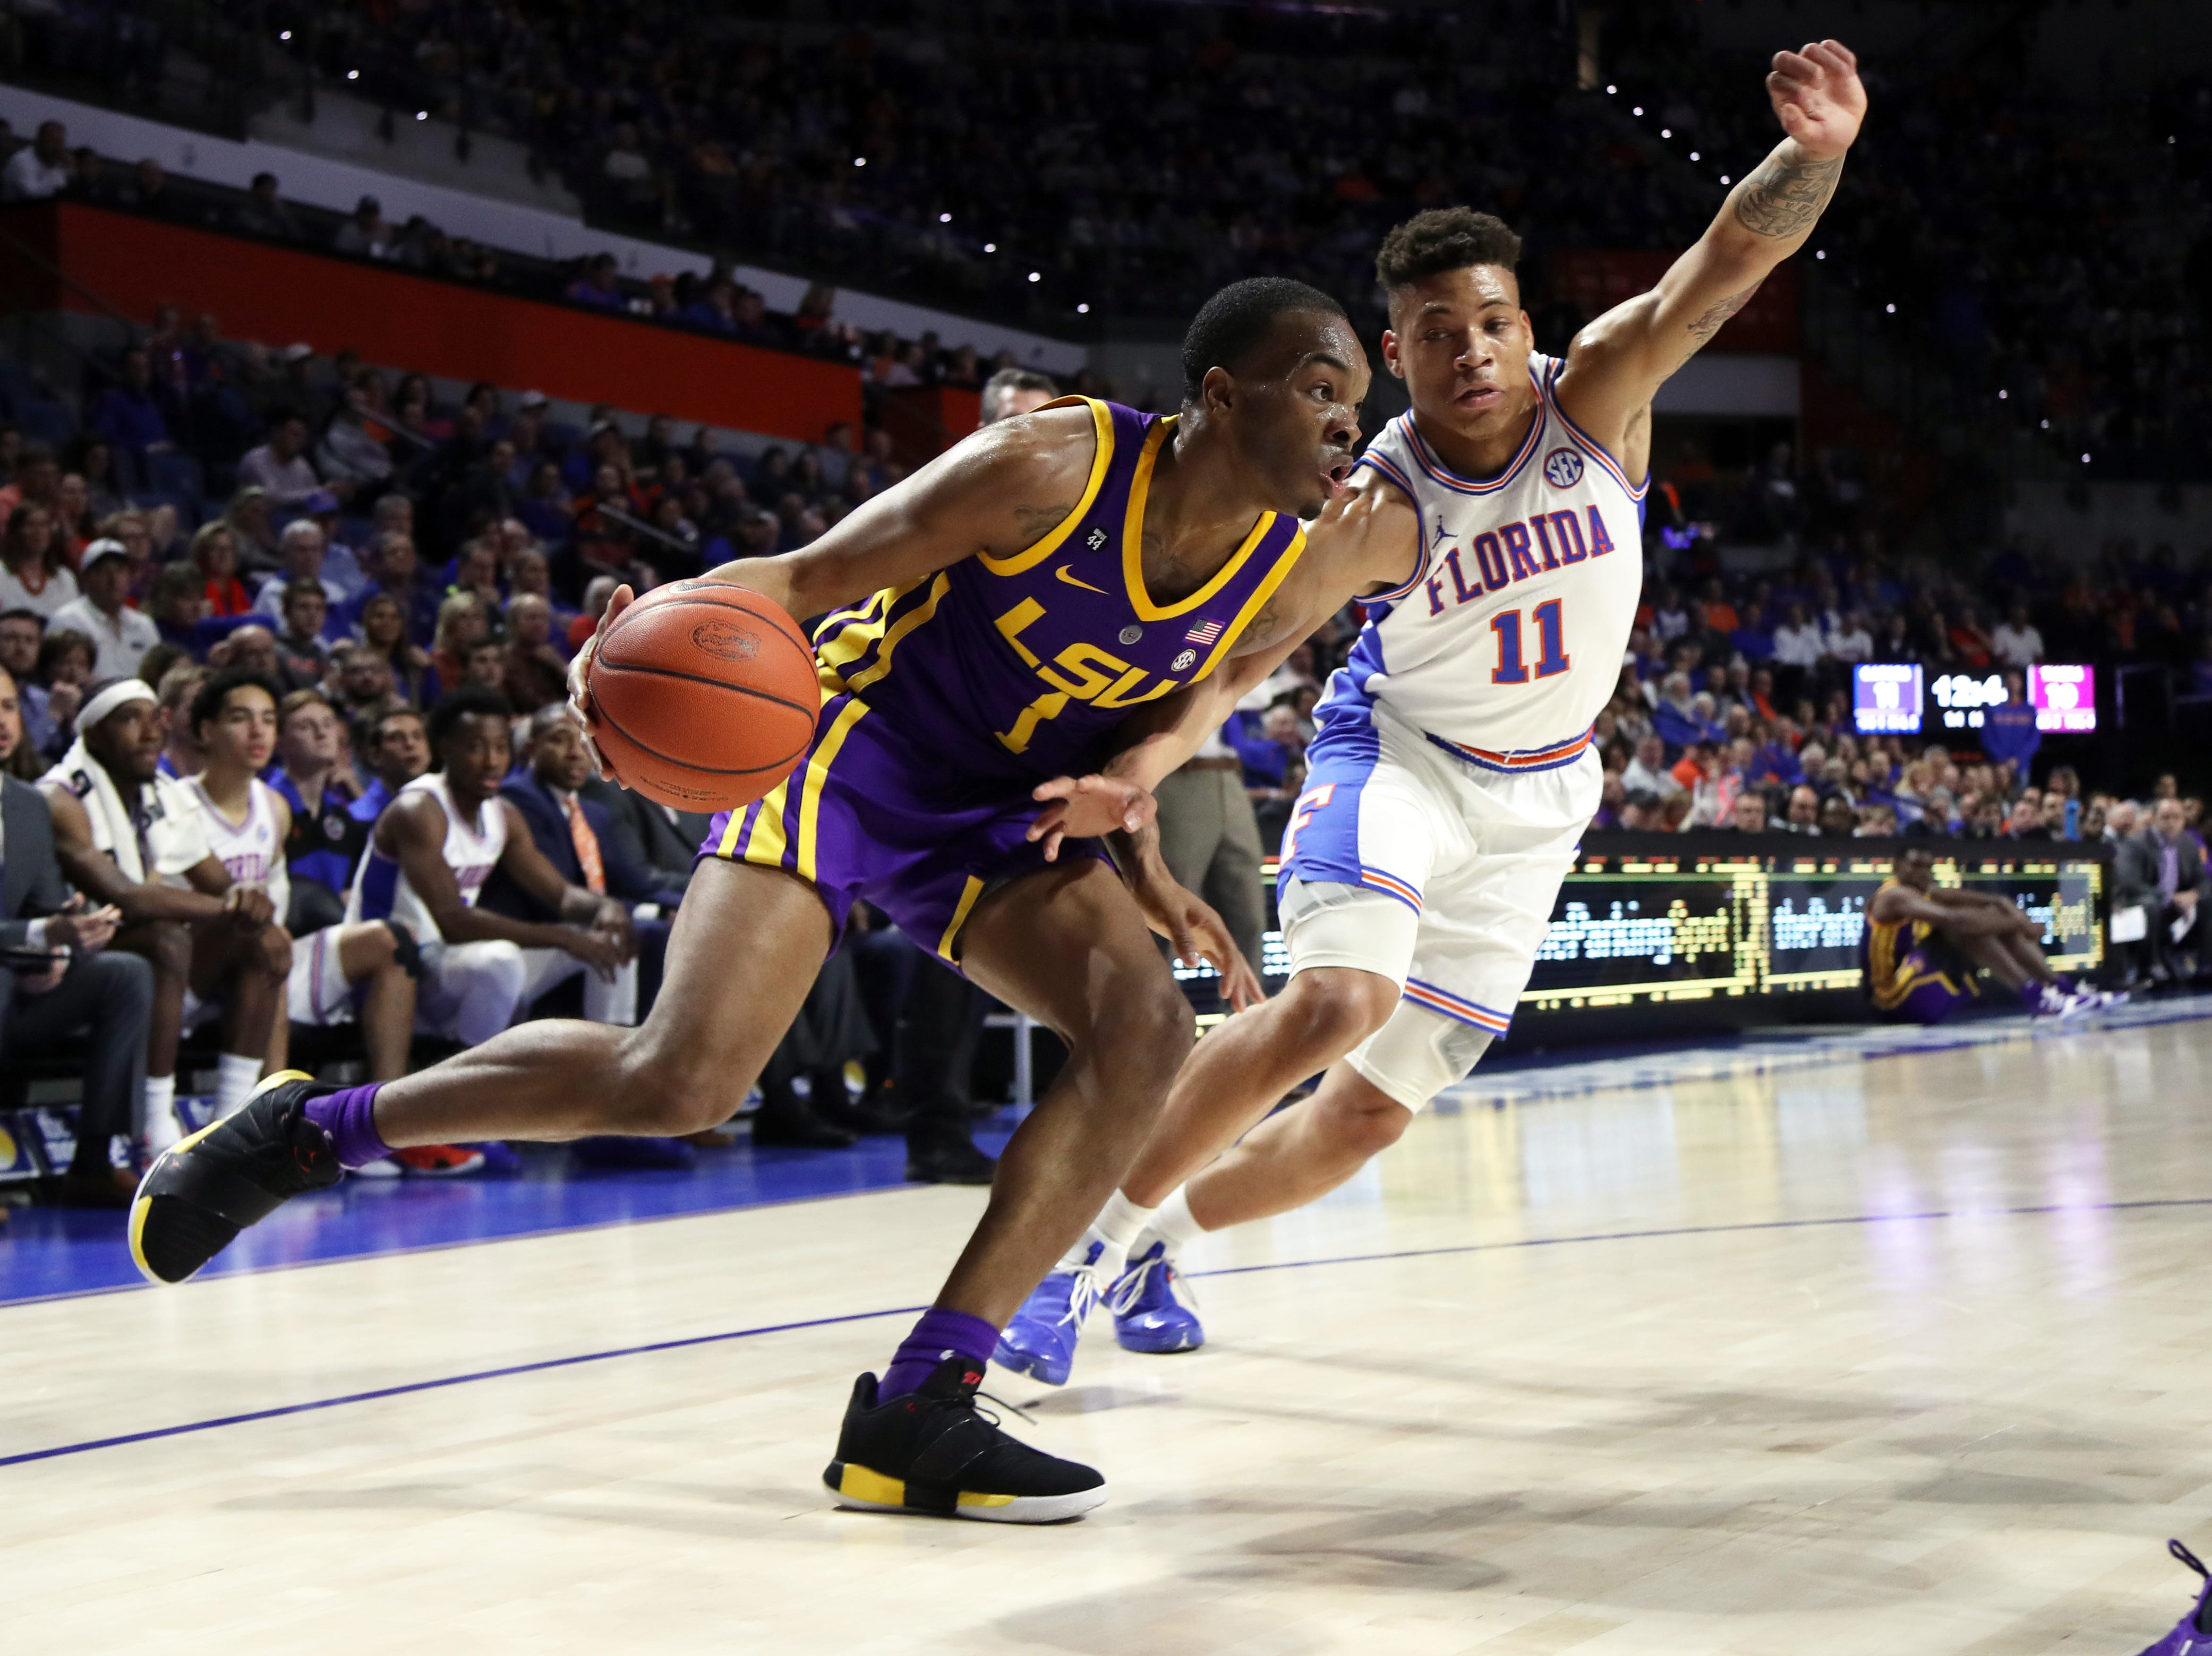 Mar 6, 2019; Gainesville, FL, USA; LSU Tigers guard Javonte Smart (1) drives to the basket as Florida Gators forward Keyontae Johnson (11) defends during the first half at Exactech Arena. Mandatory Credit: Kim Klement-USA TODAY Sports